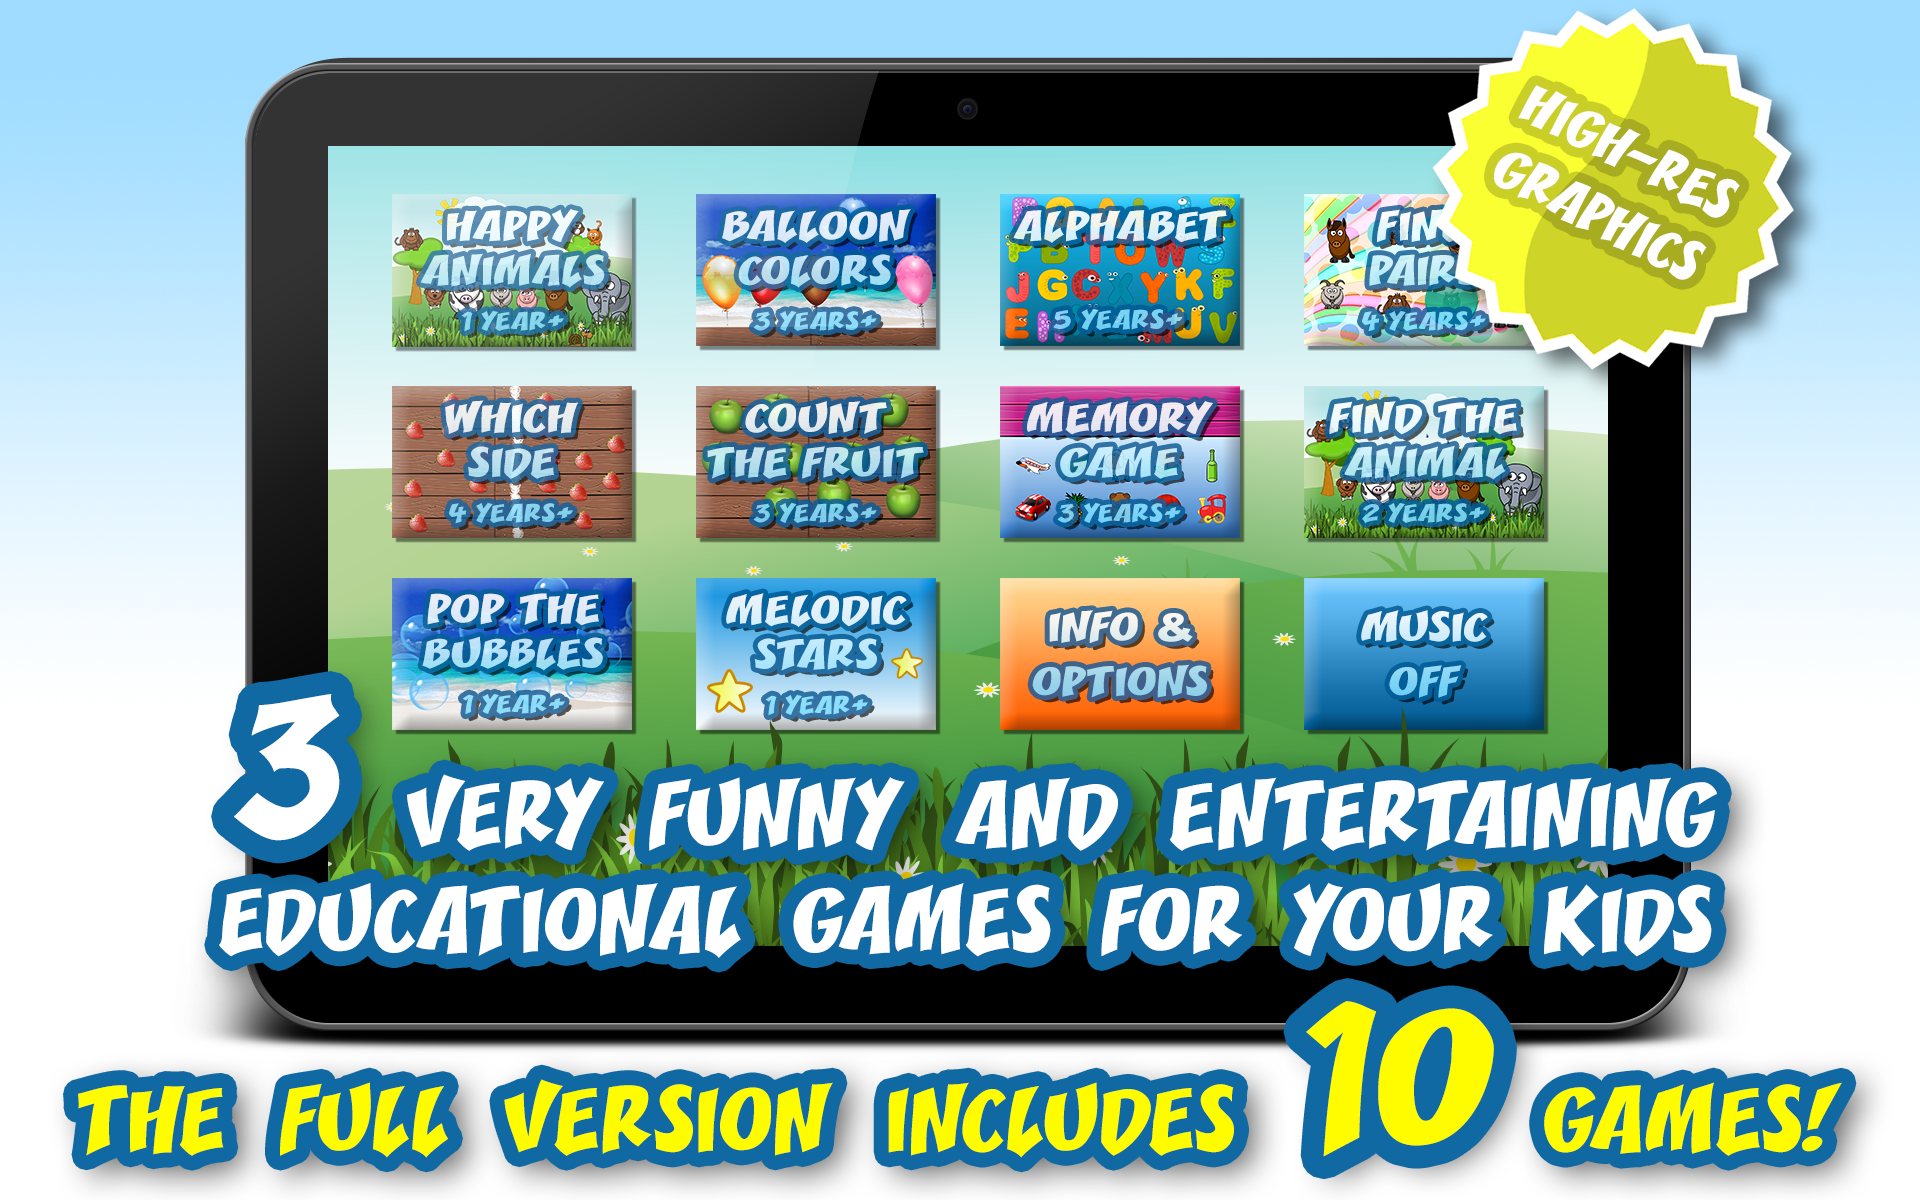 Free Games for Kids & Babies